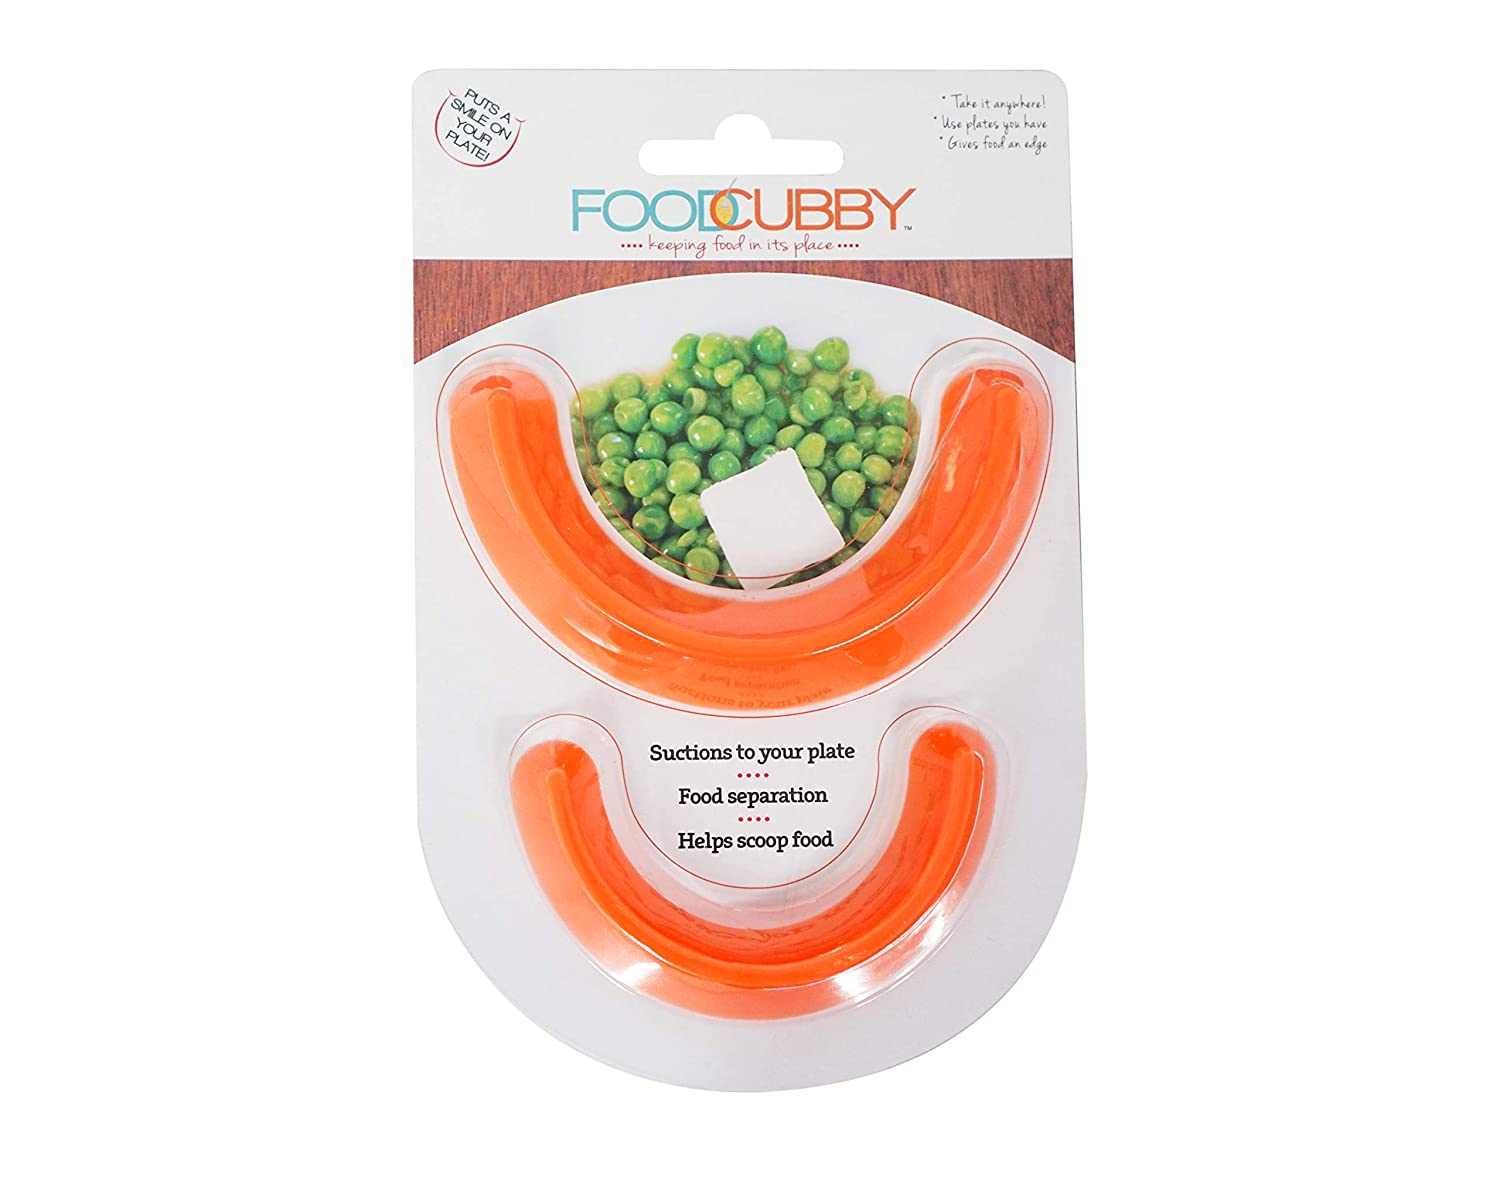 Food Cubby Plate Divider - Food Separator - Food Safe Silicone (2, Clear) by Food Cubby   B01FGS9ZIS